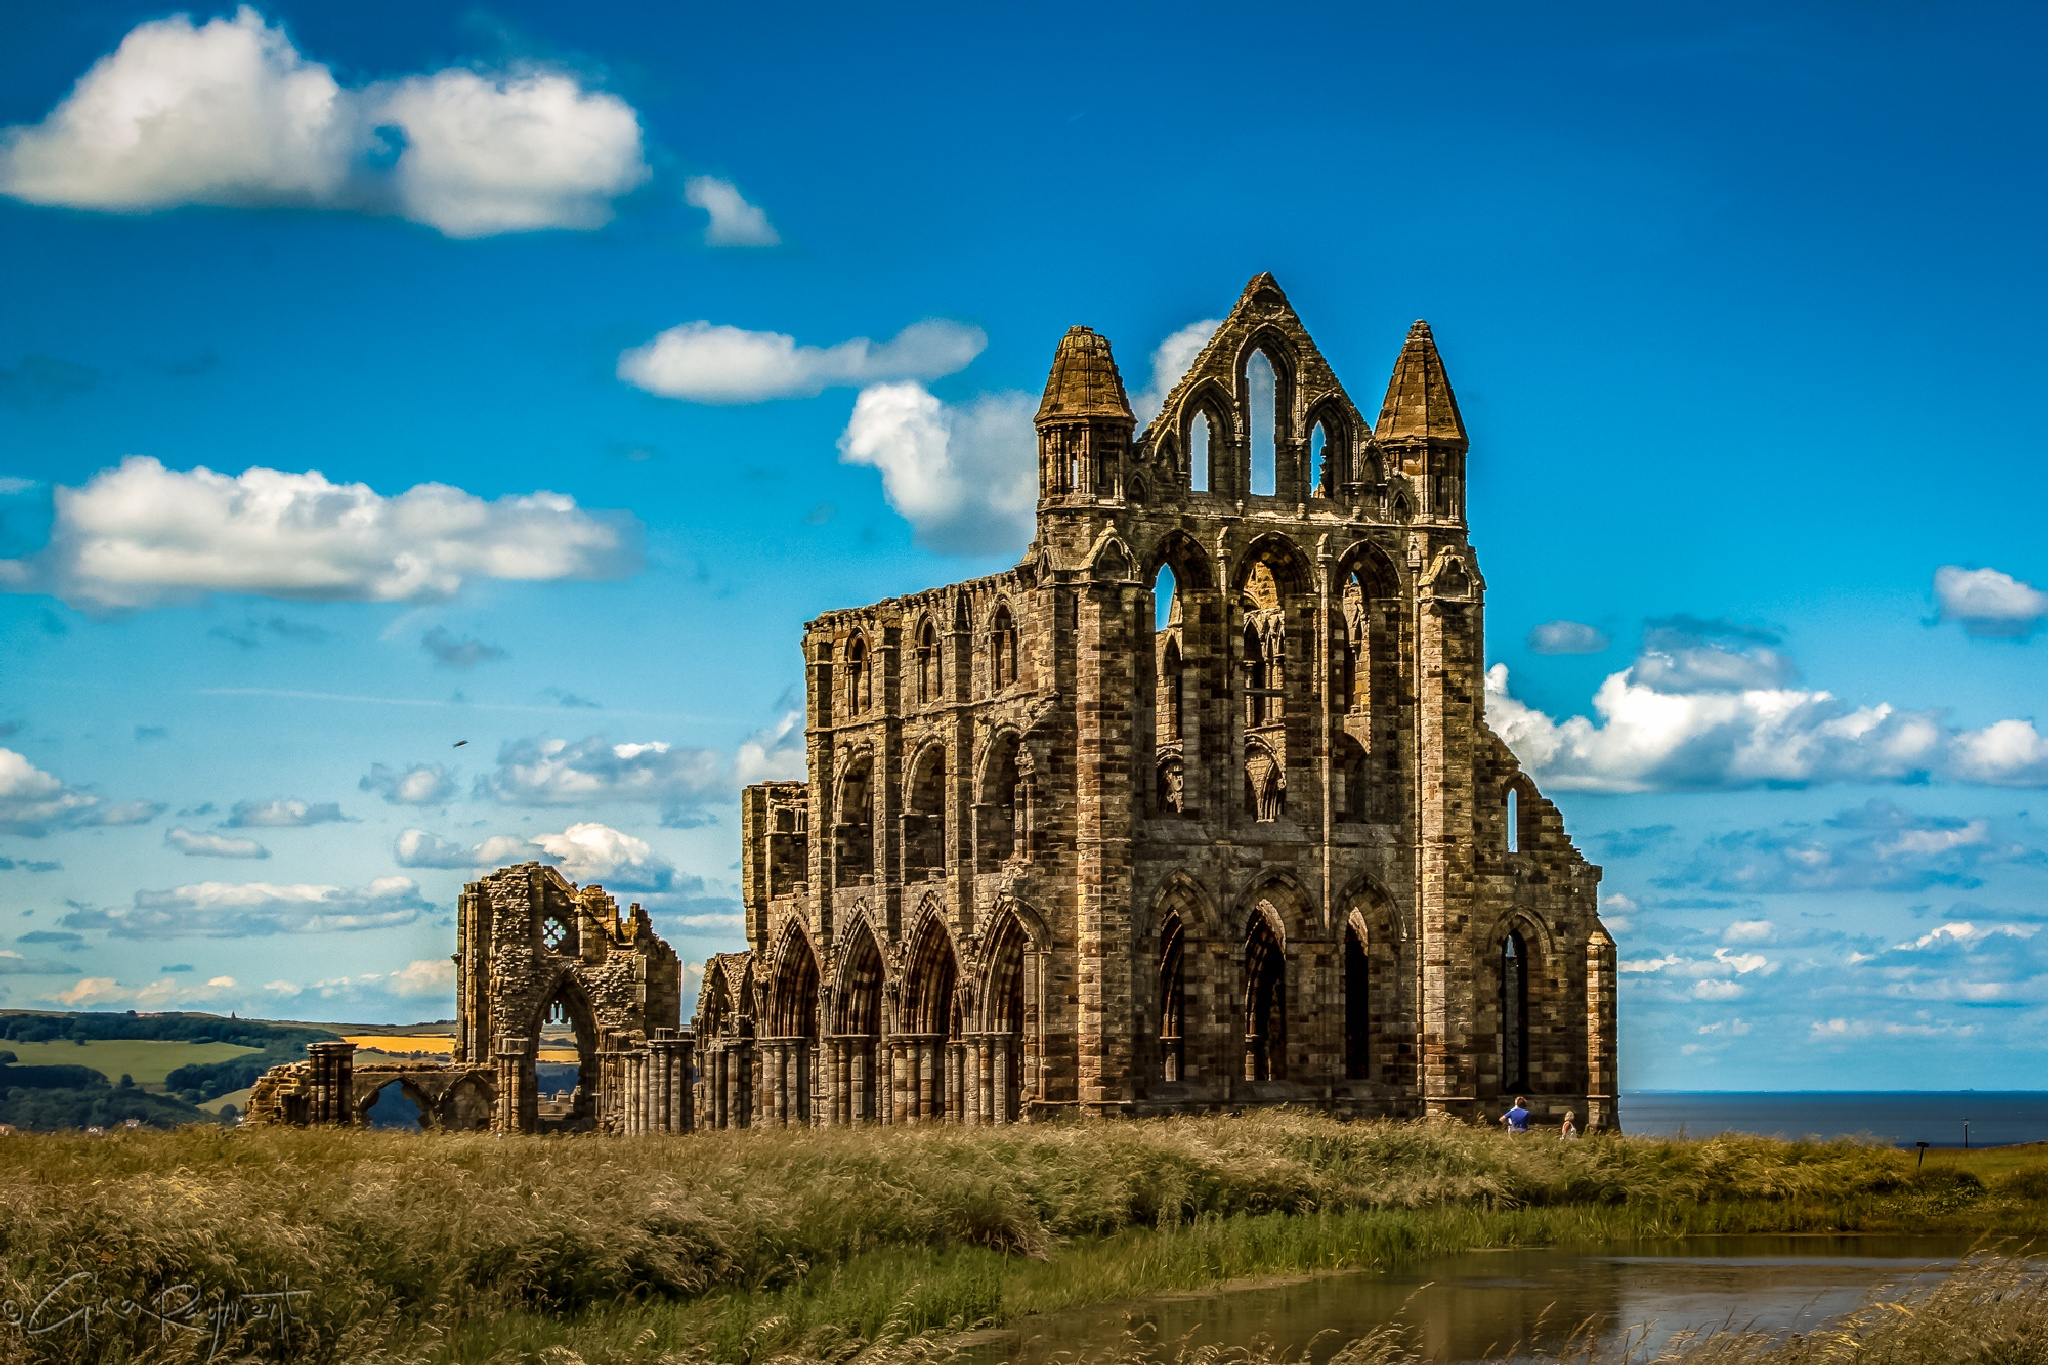 Whitby Abbey by Gina Rayment